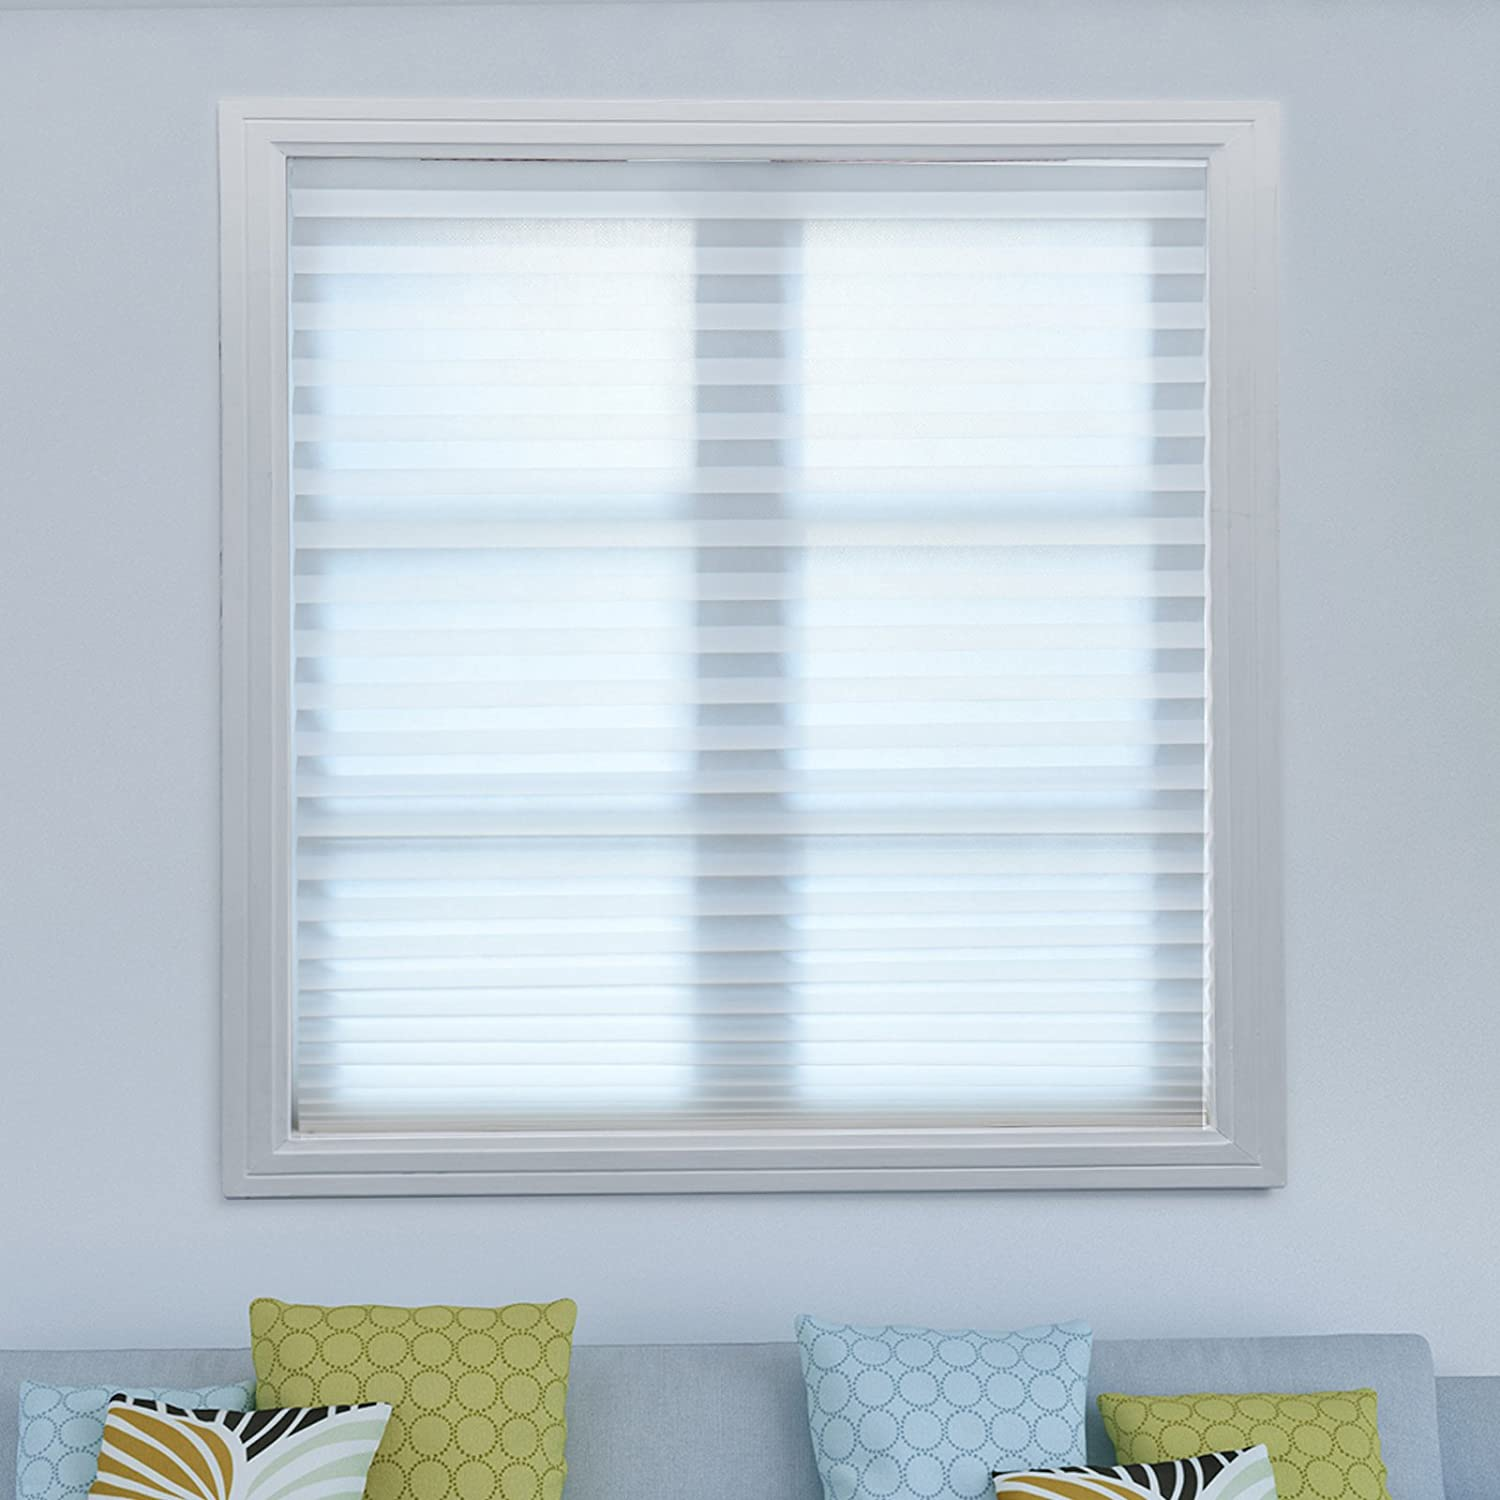 Acholo 1PACK Easy to Install Trim-at-Home Room Darkening Pleated Fabric Shades Blinds Black for Windows 36